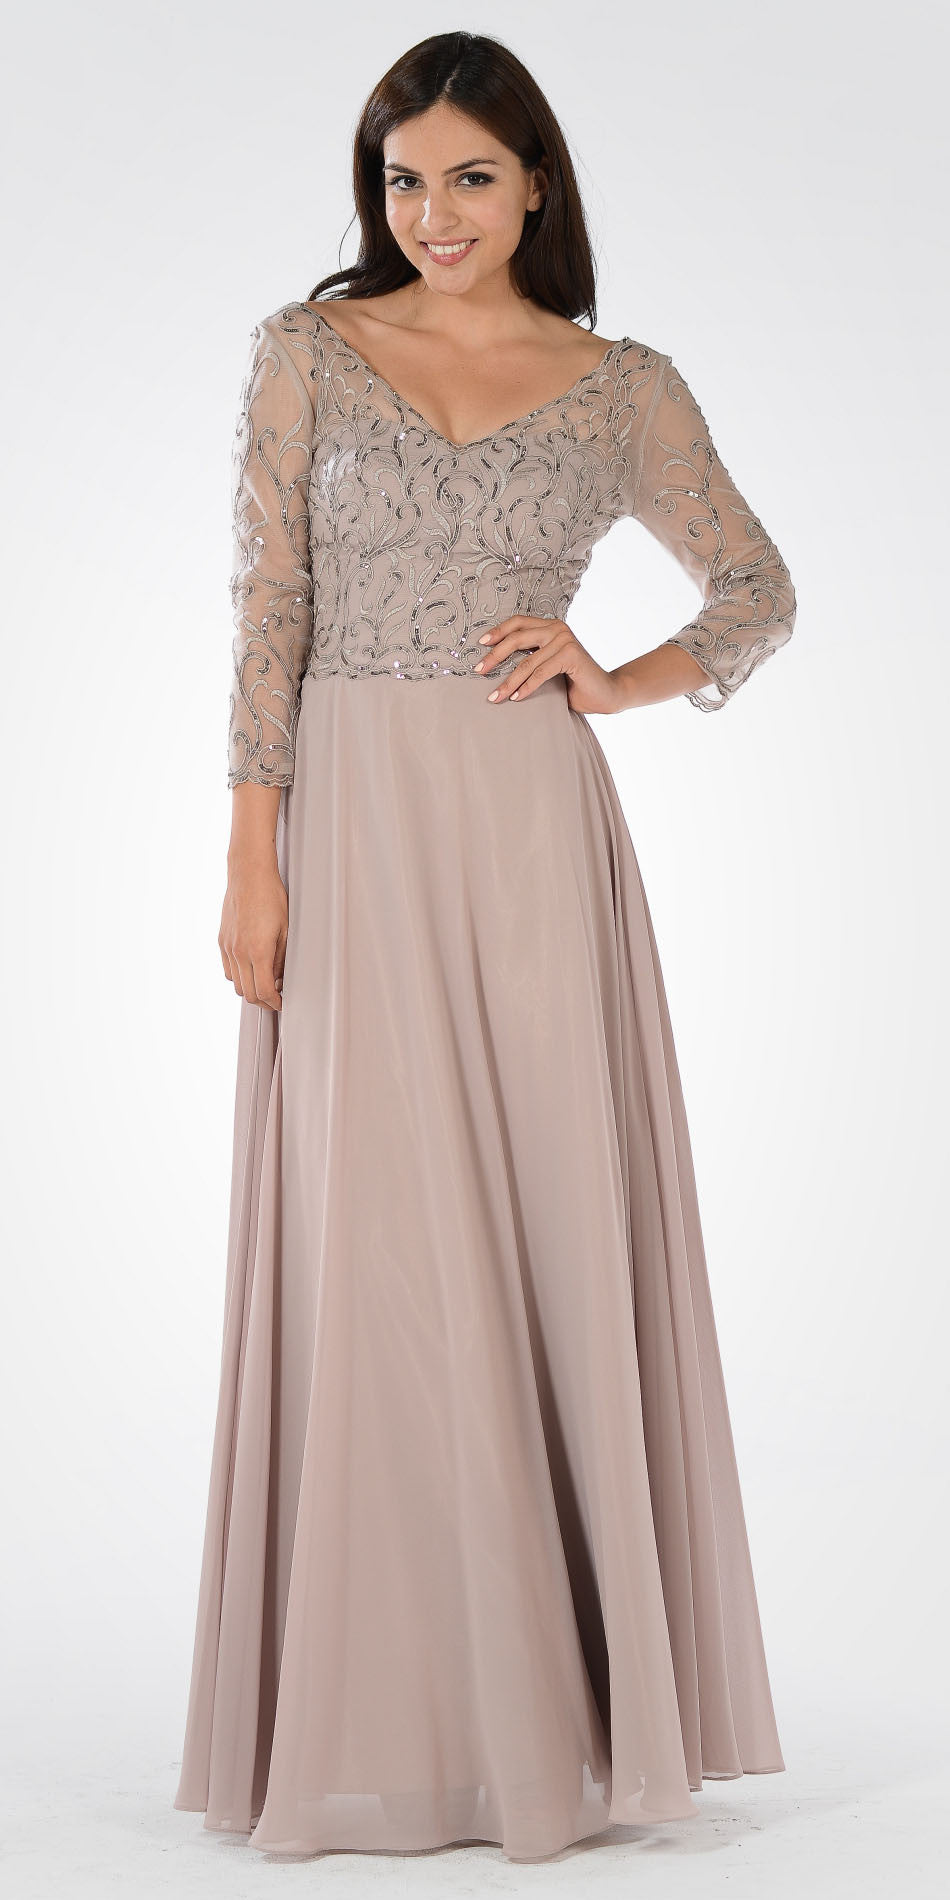 50581b6d33 V-Neck Mid Sleeves Lace Top A-Line Formal Dress Long Beige. Tap to expand